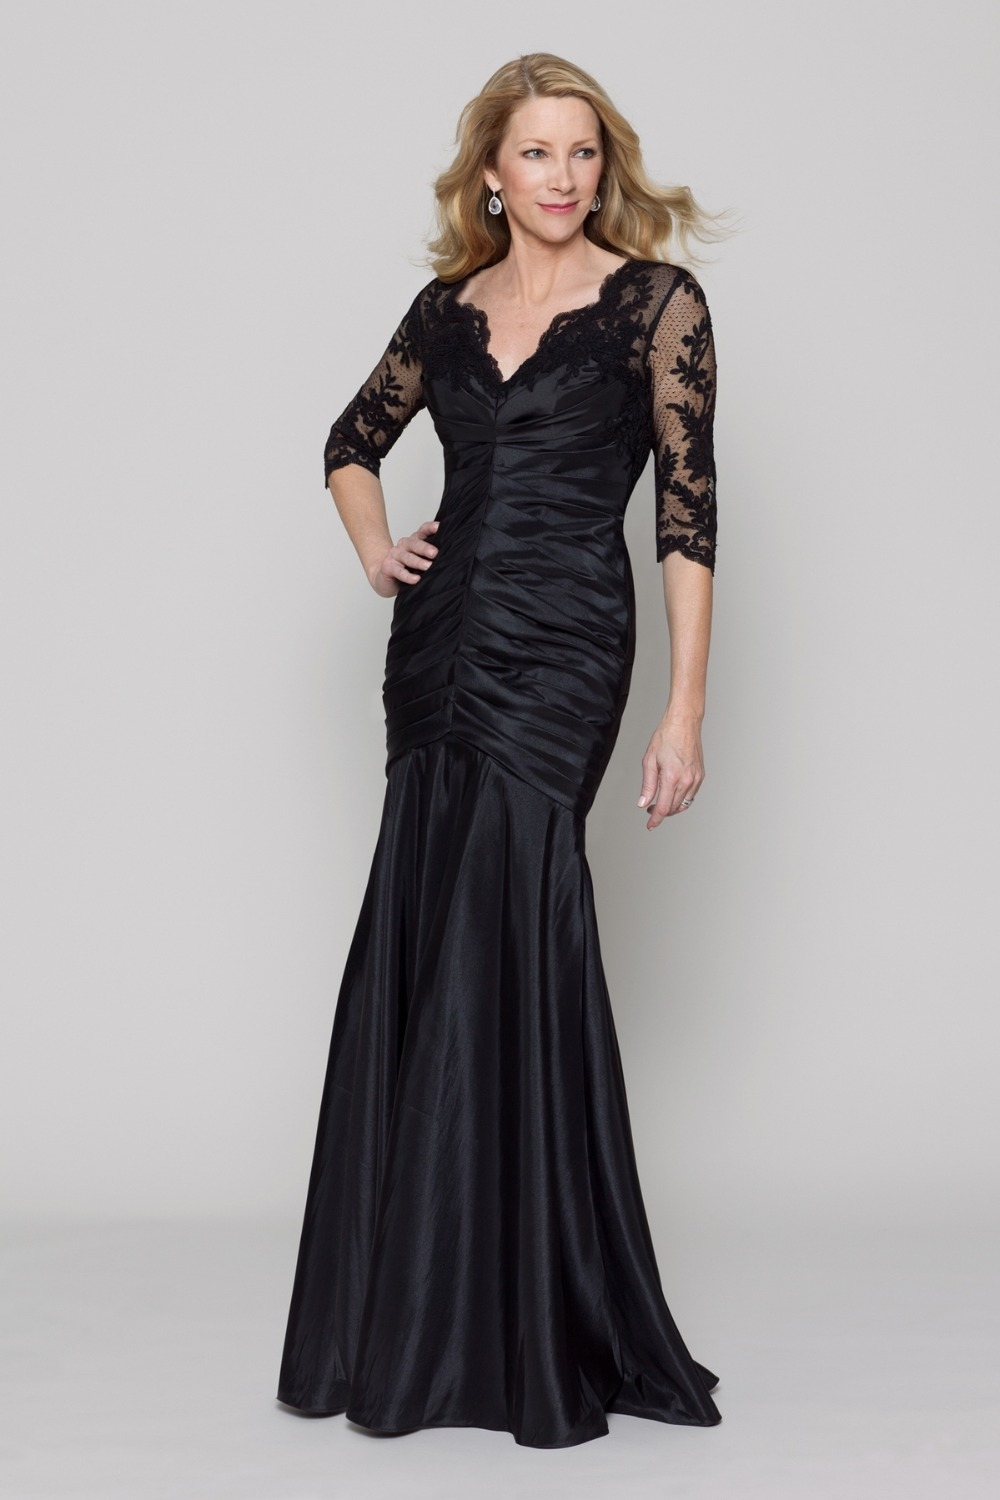 elegant satin mermaid black long train dress mother of the